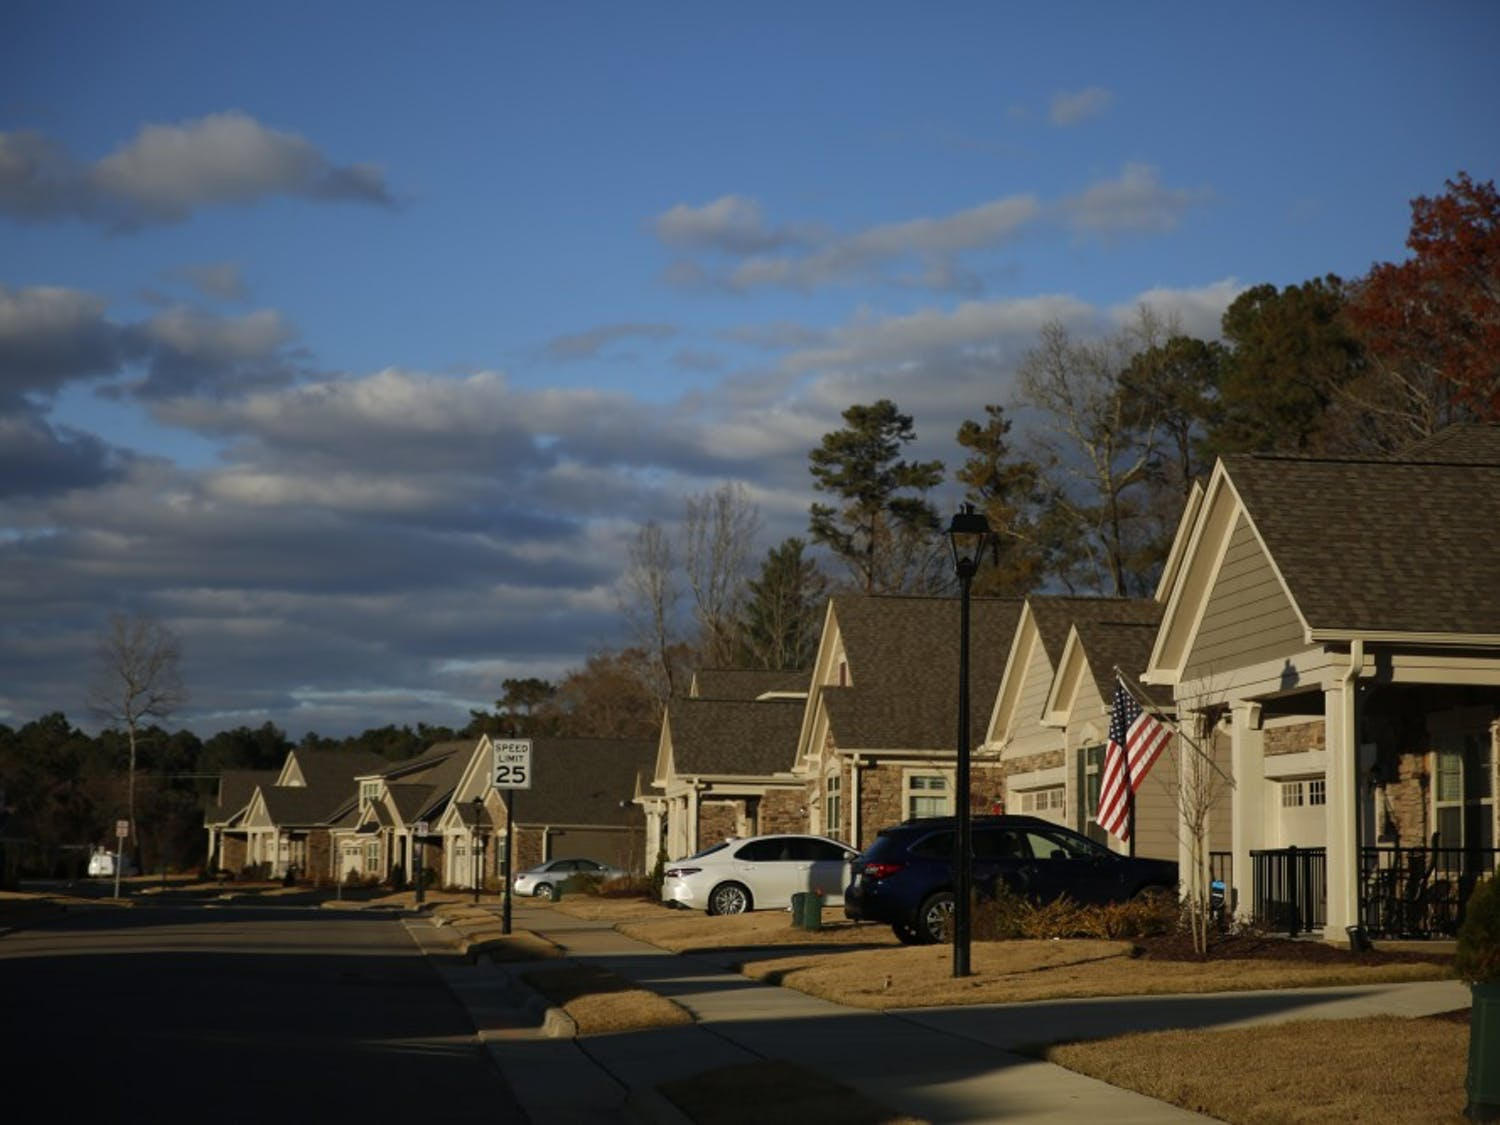 The Courtyards at Homestead Road is one of Chapel Hill's new development projects that the town has been discussing recently.